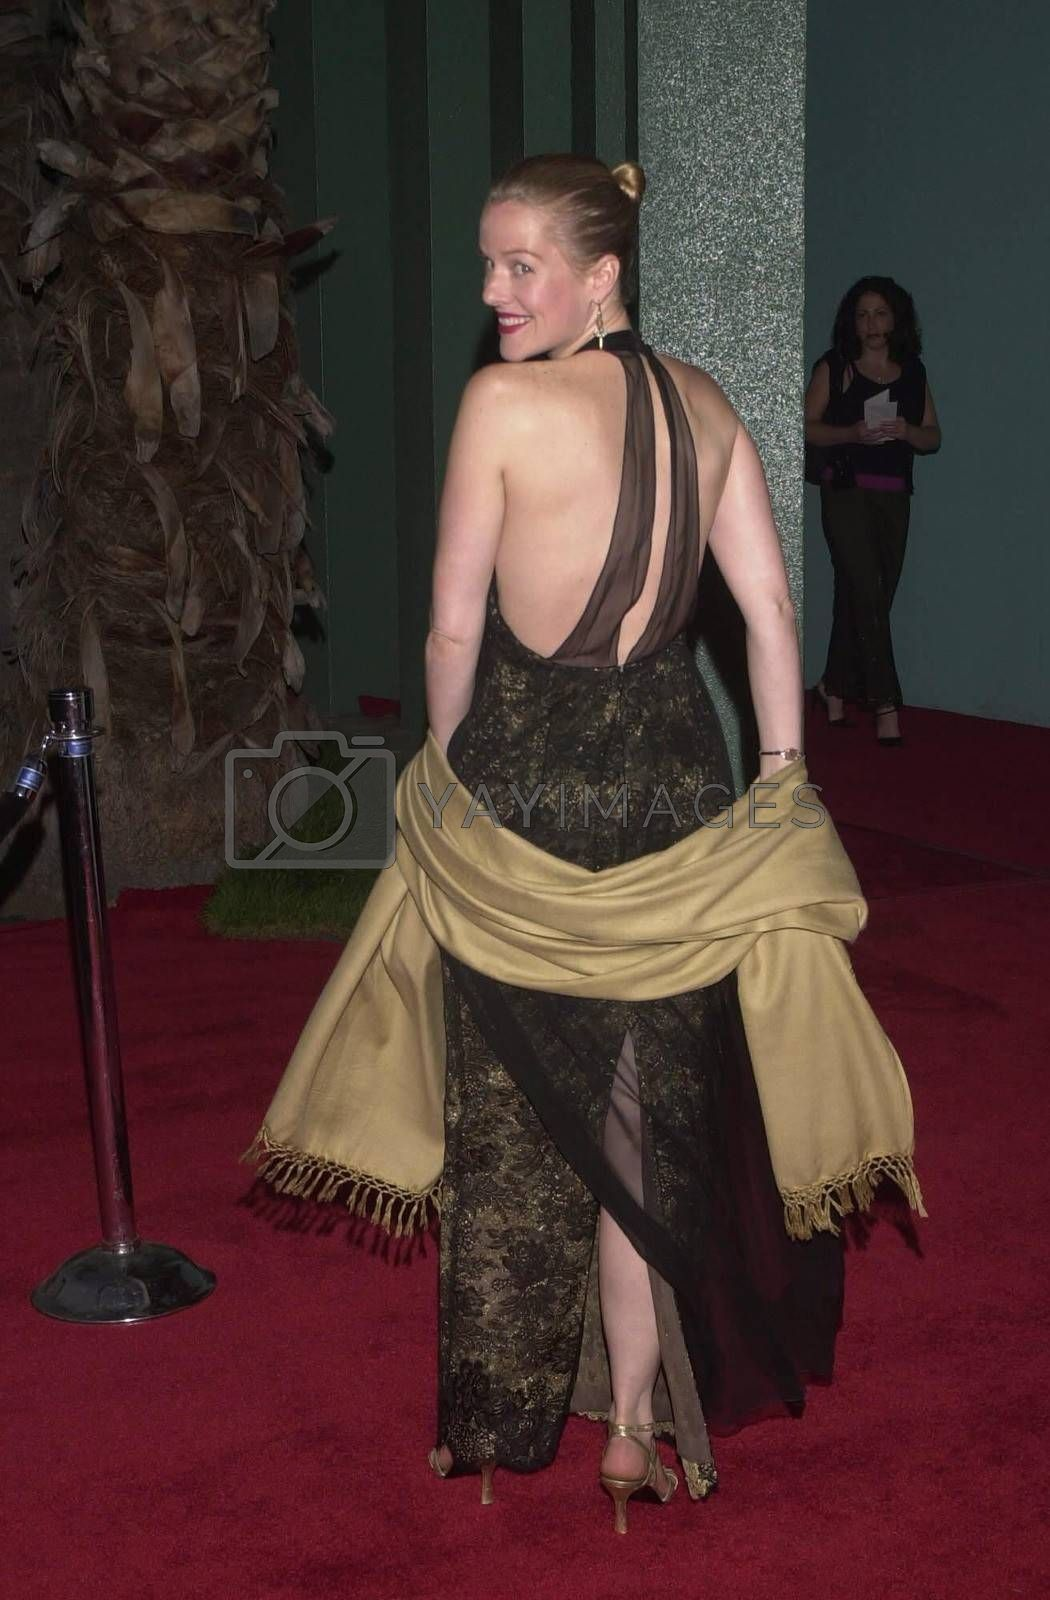 Penelope Ann Miller at the 2nd Annual ALS Benefit at the Hollywood Palladium, 04-10-00